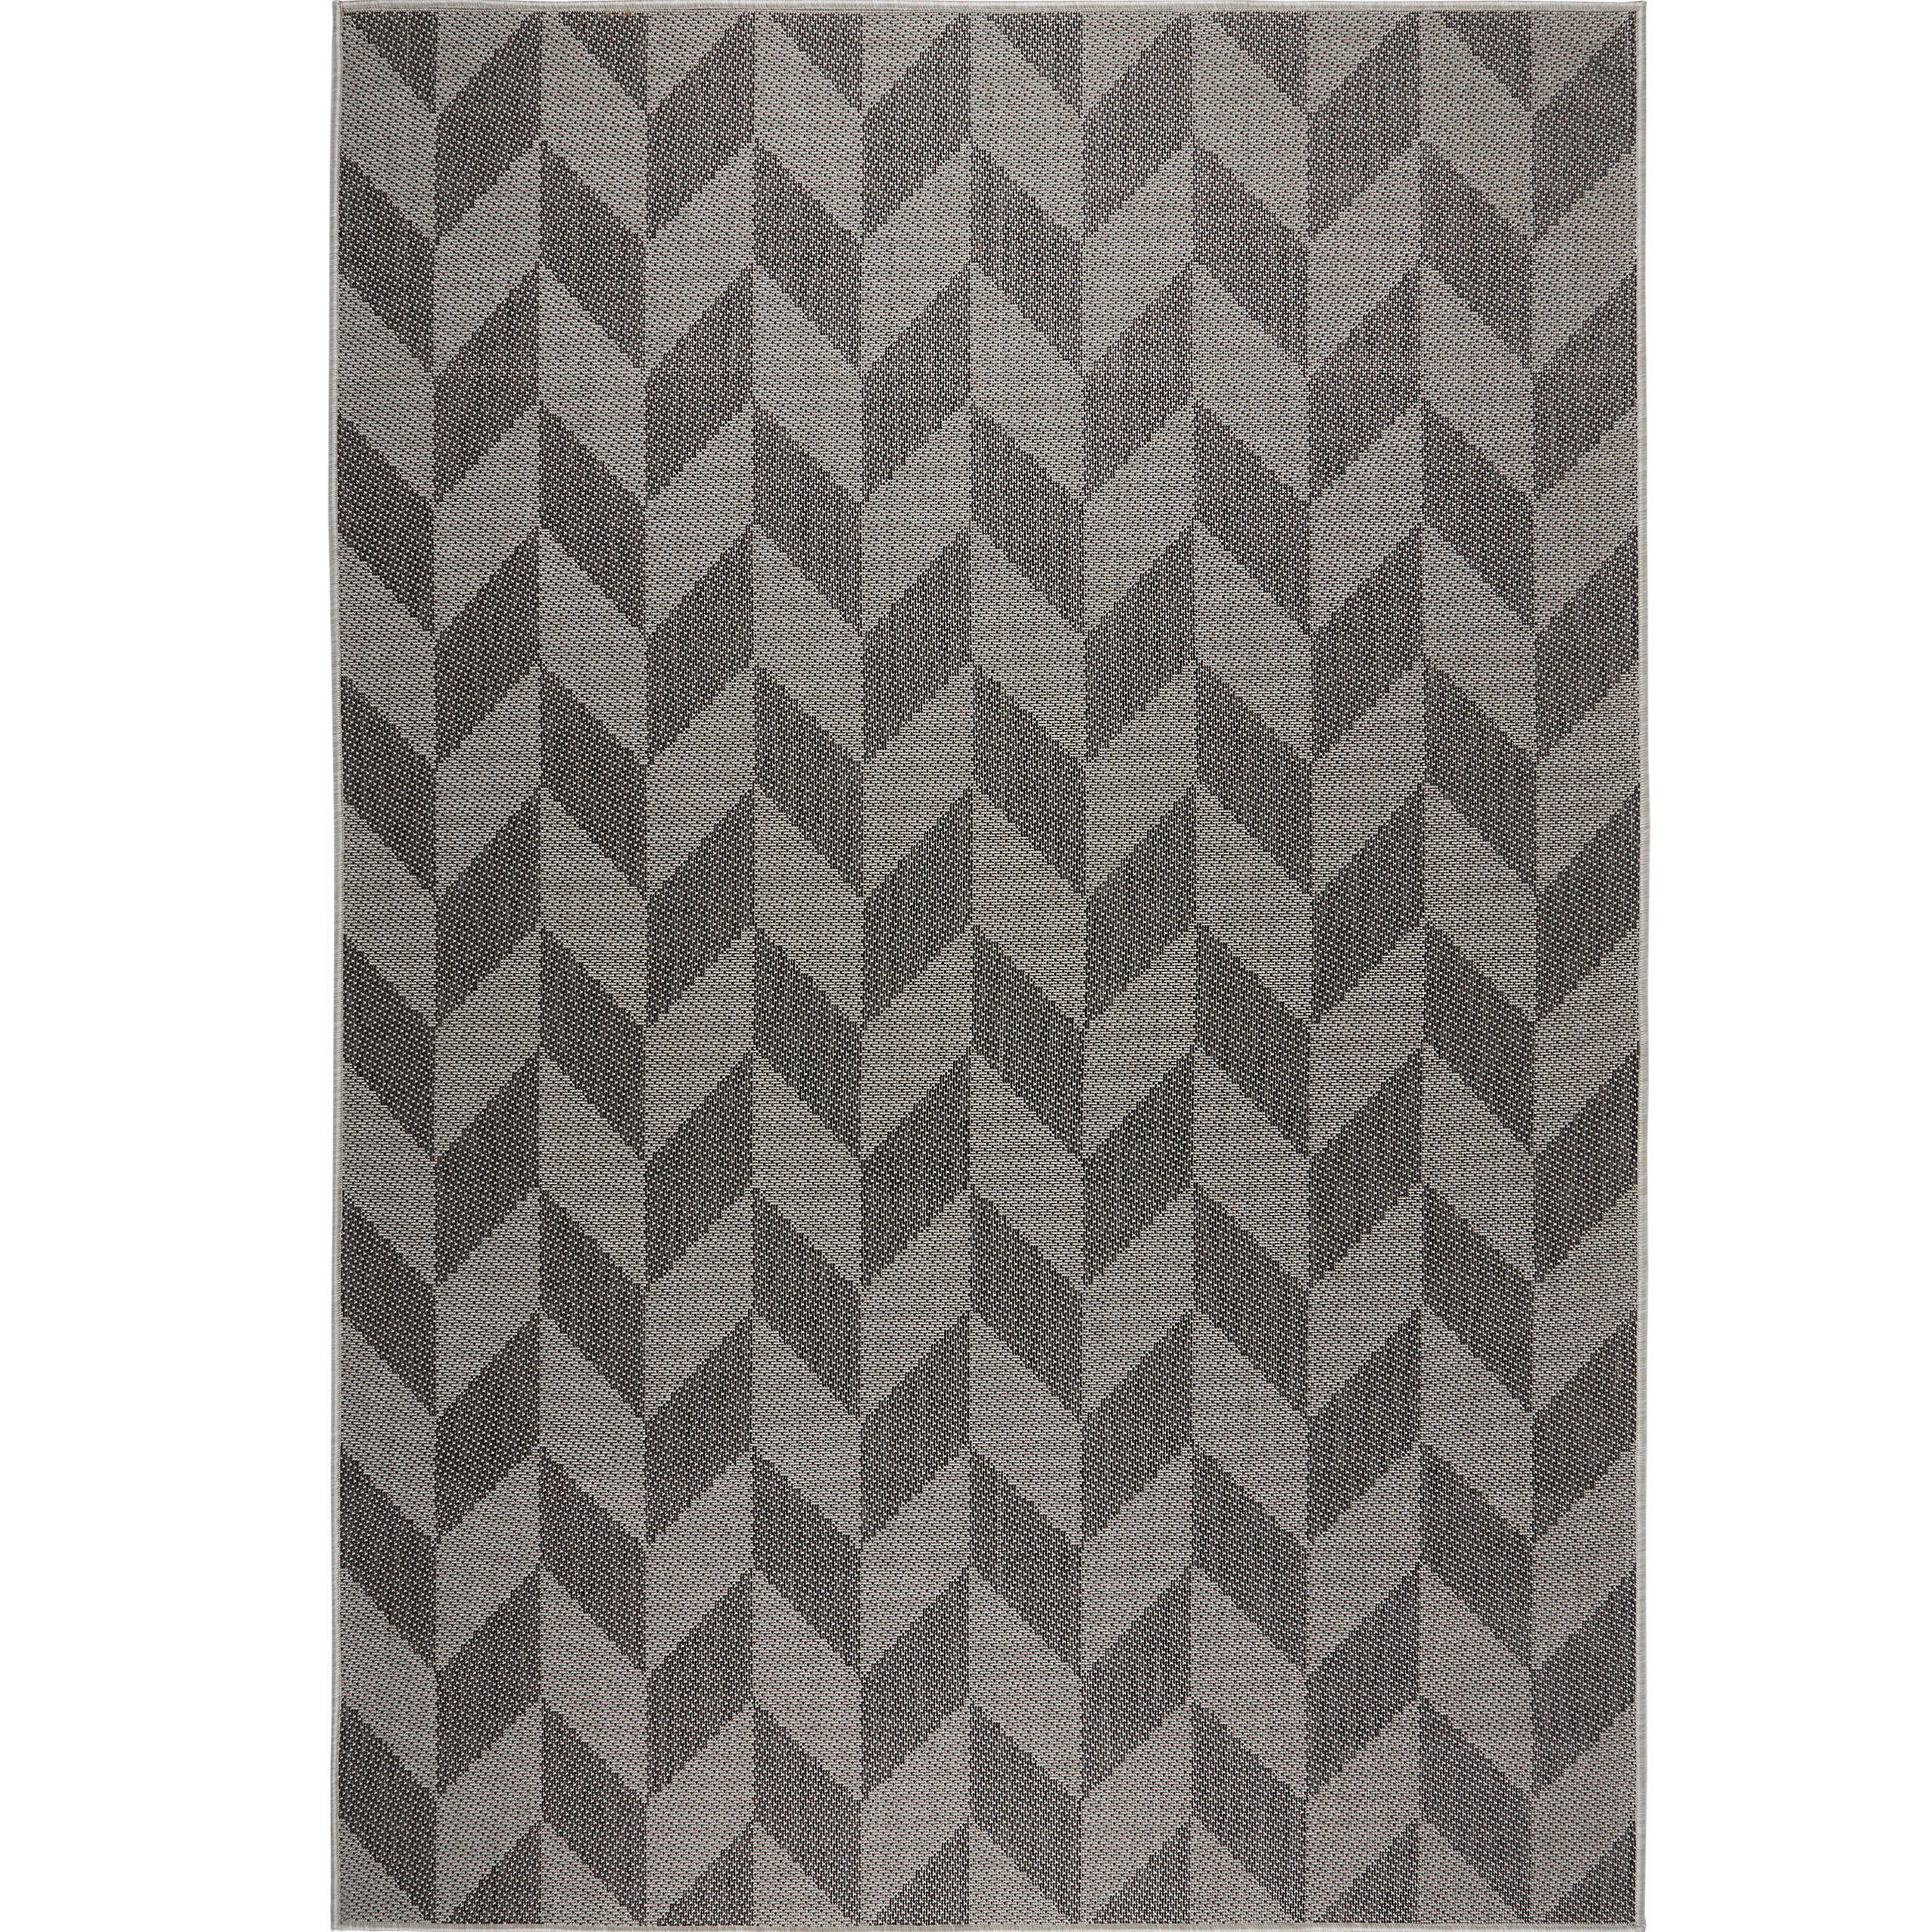 Home Dynamix Nicole Miller Patio Country Calla Indoor/Outdoor Area Rug 7'9''x10'2'', Modern Geometric Black/Gray by Home Dynamix (Image #2)